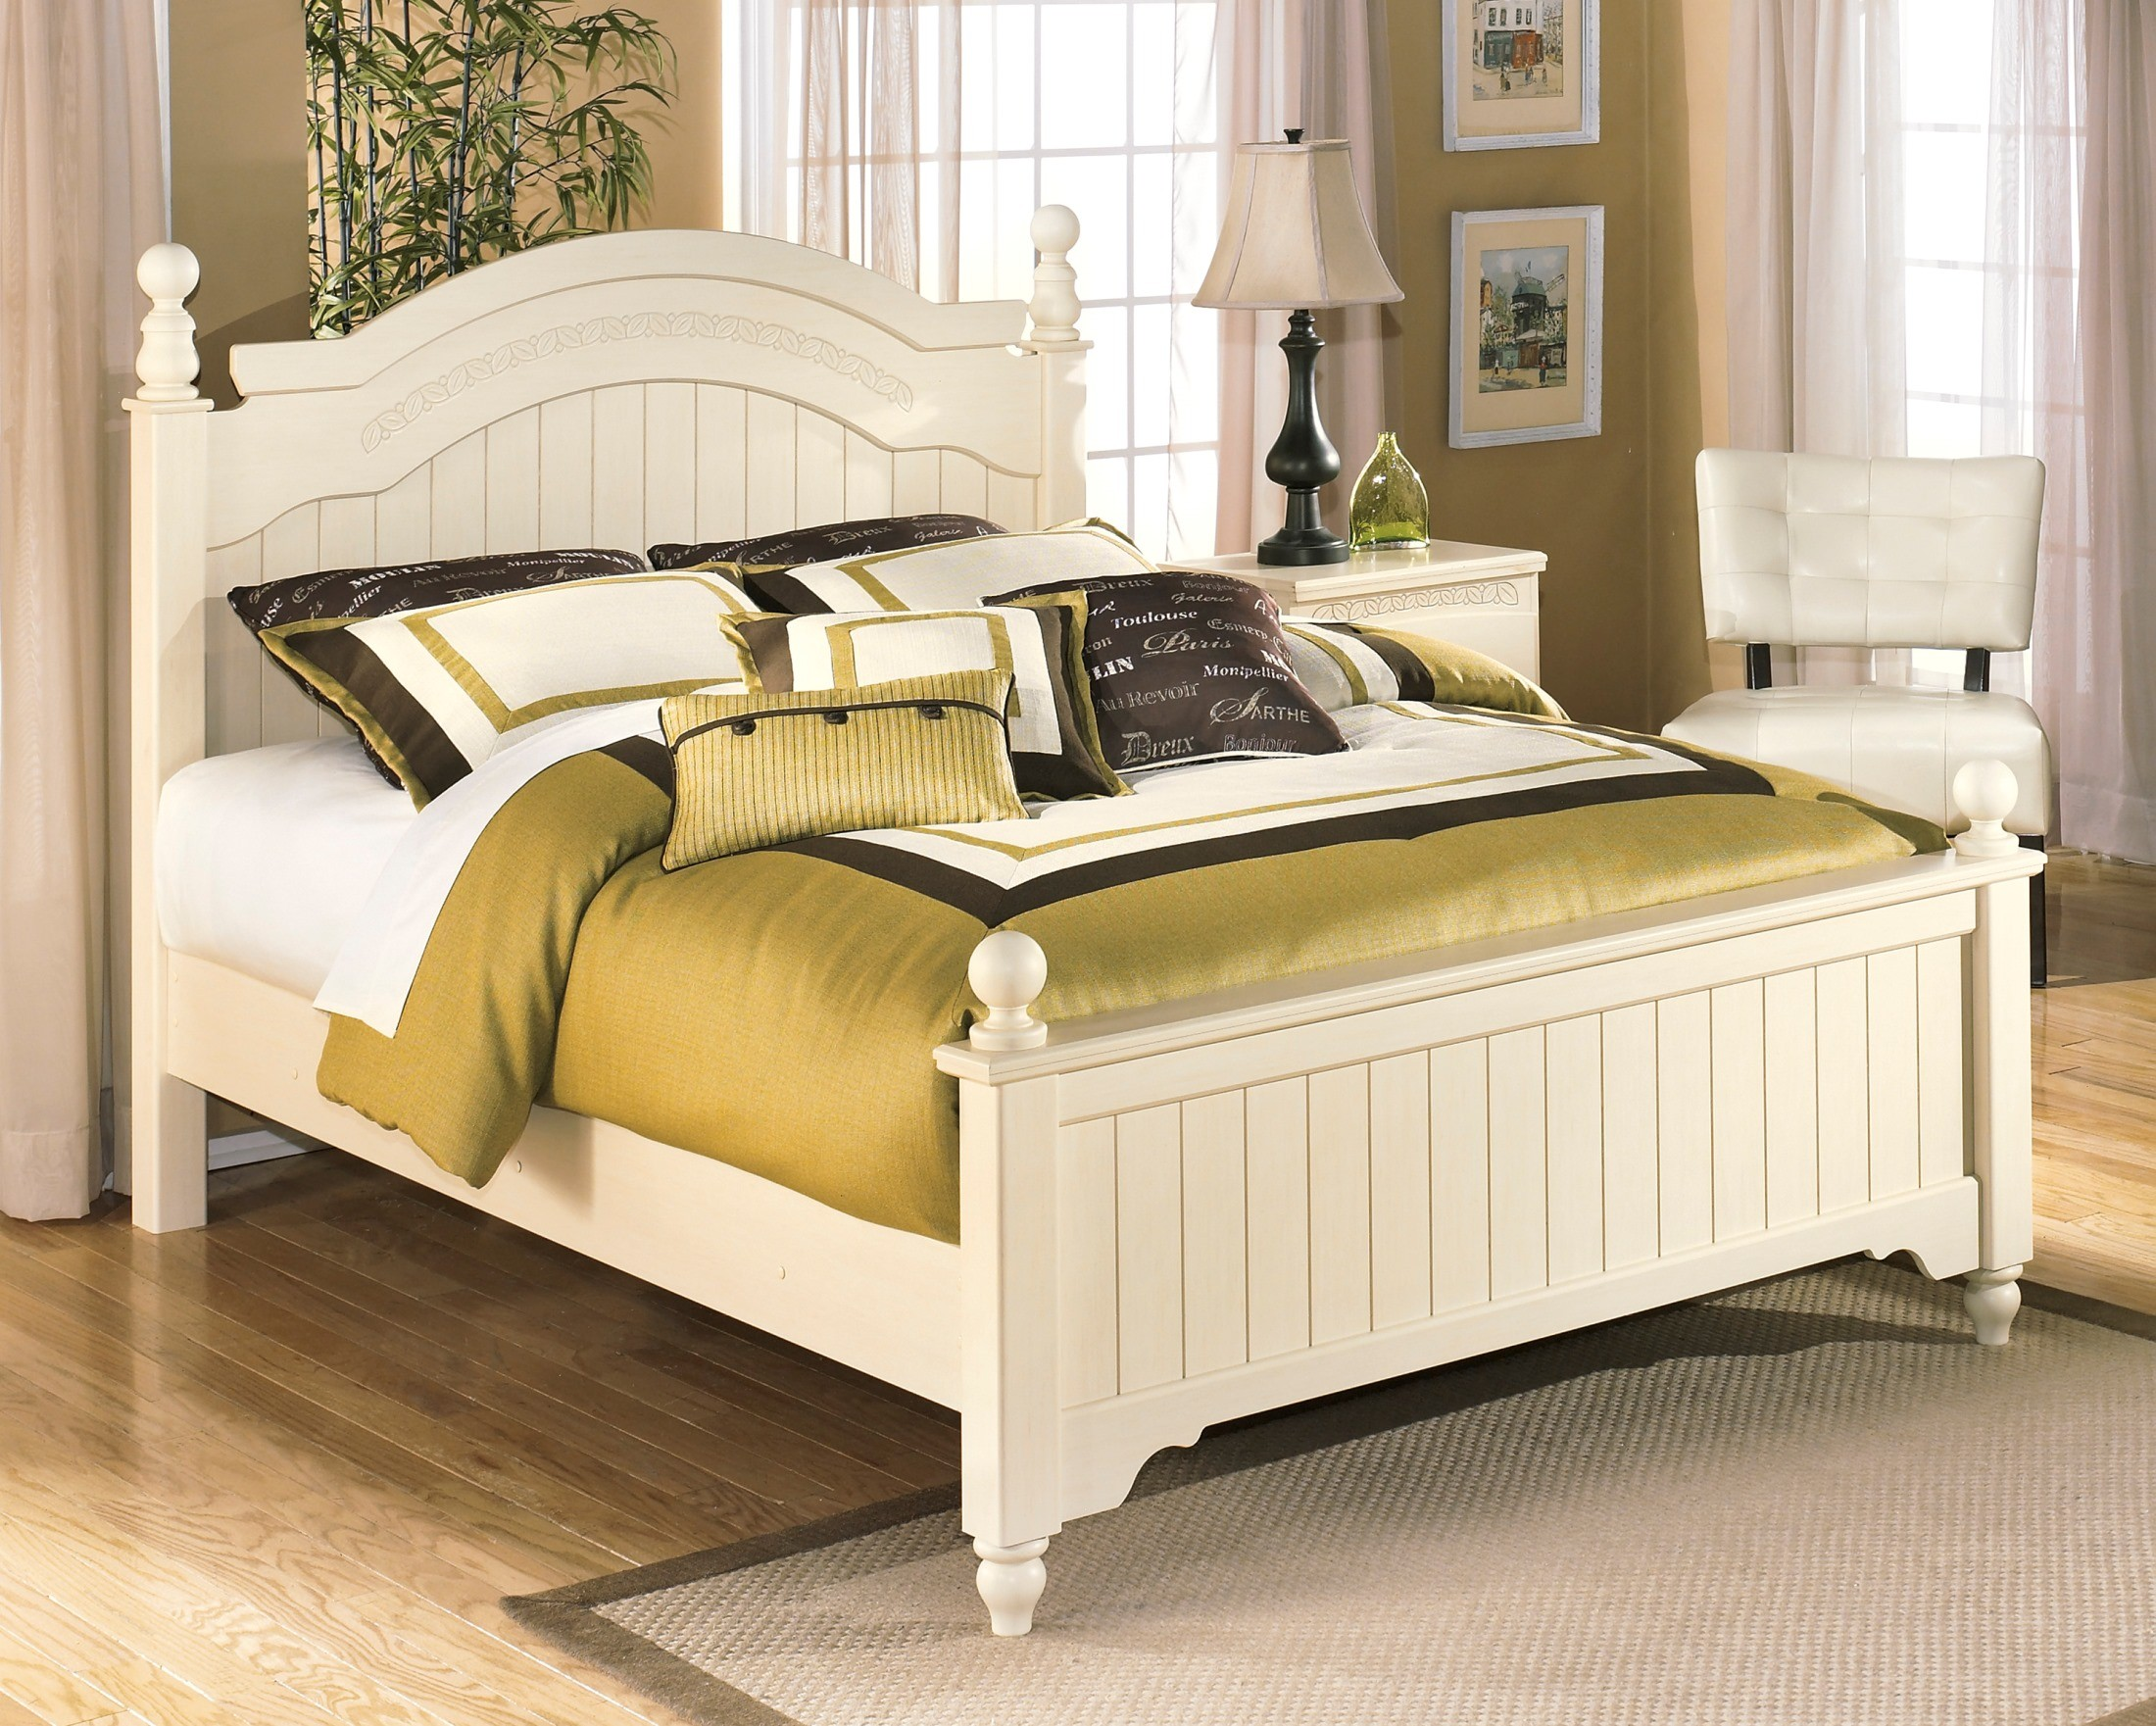 Cottage retreat queen poster bed from ashley b213 57n 54n for Cottage retreat ii